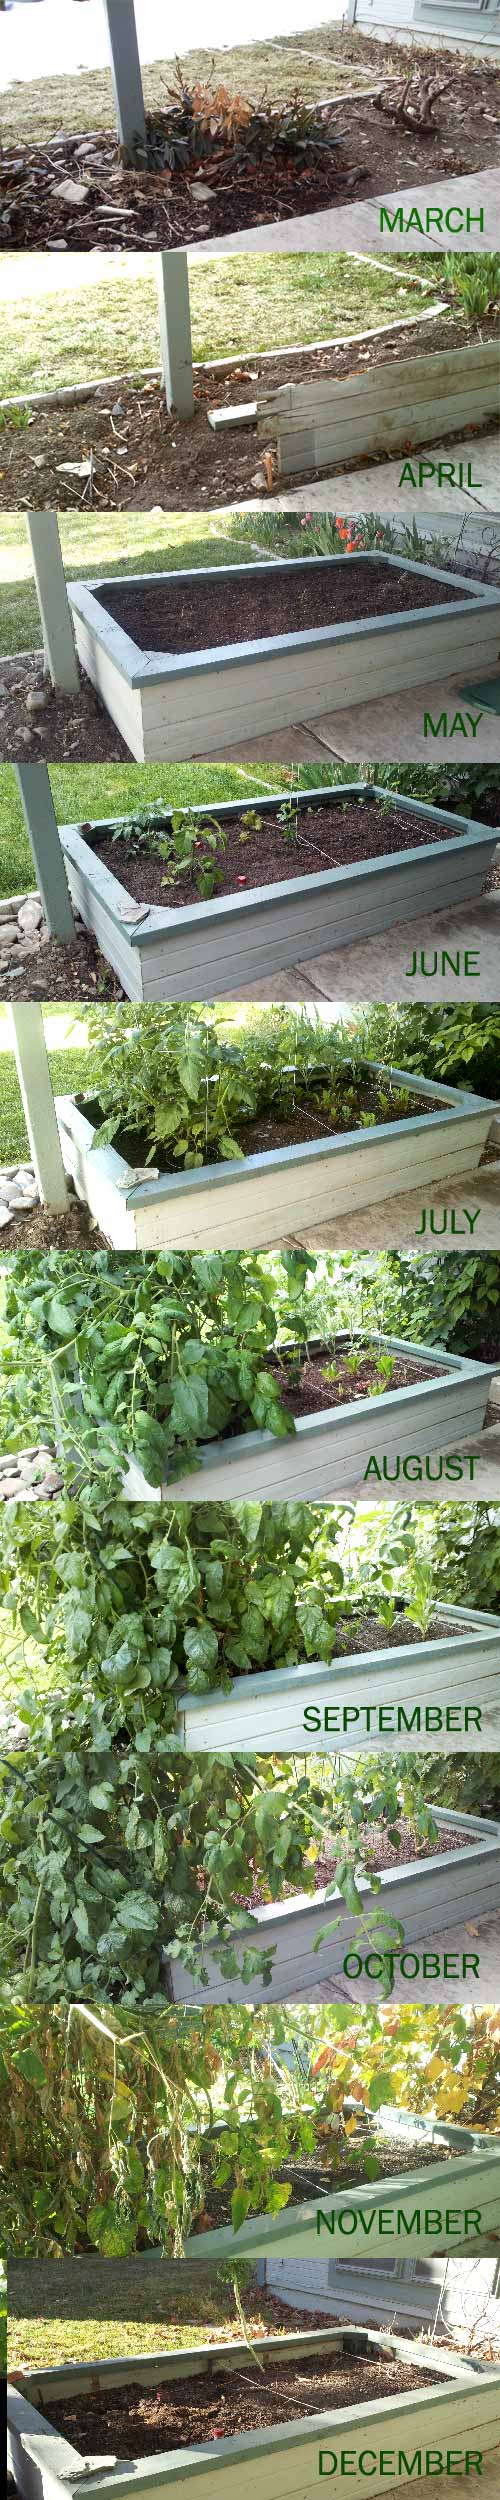 Full year of our raised bed